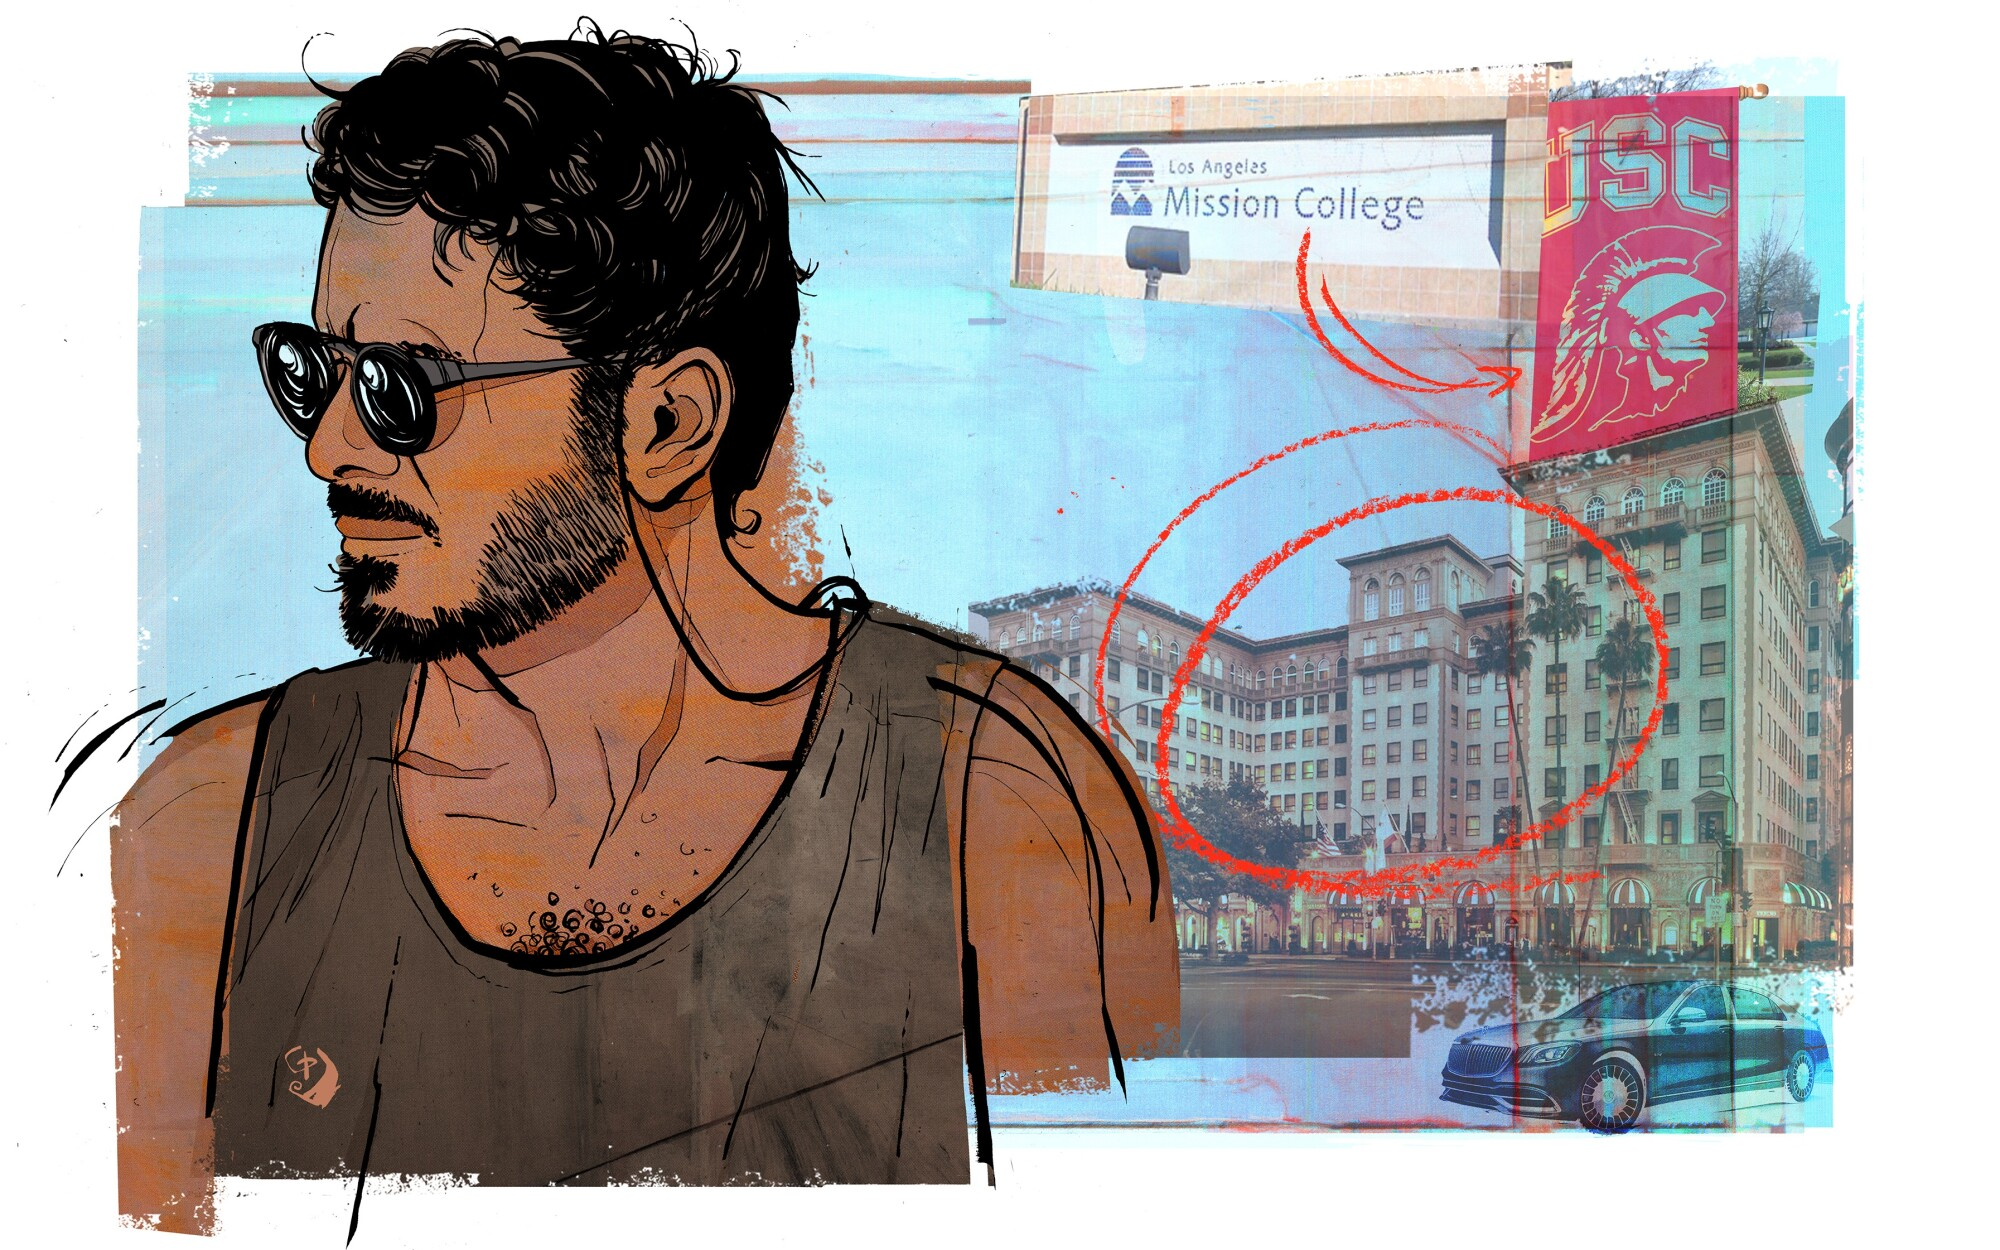 Illustration of Sheikh Khalifa bin Hamad bin Khalifa Al Thani and his time in L.A., including the Beverly Wilshire Hotel.